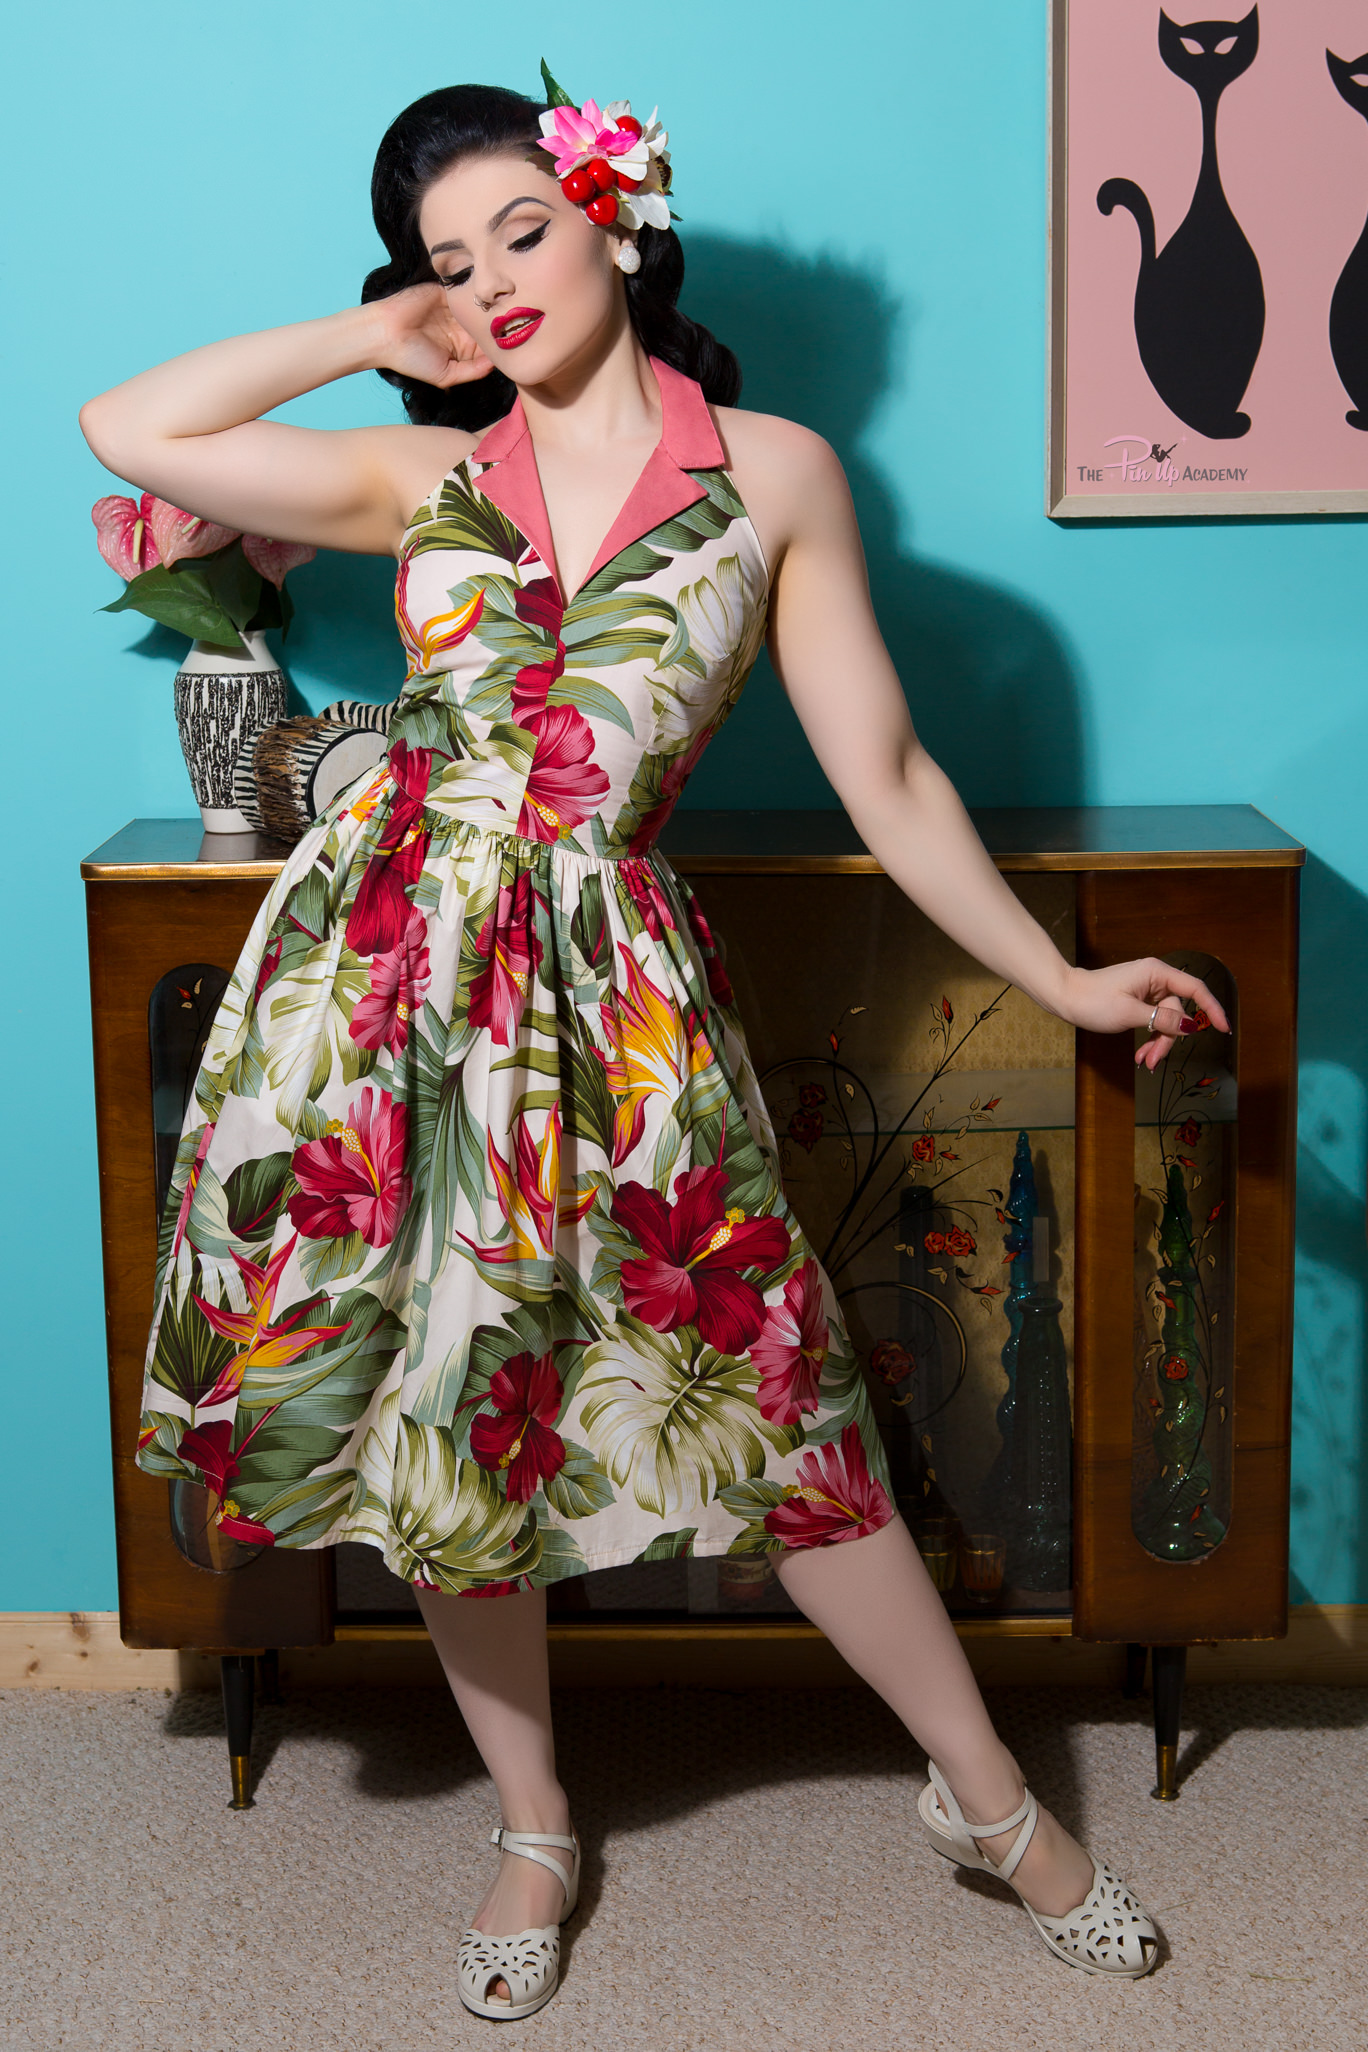 pinup model wearing floral vintage dress by violets in may